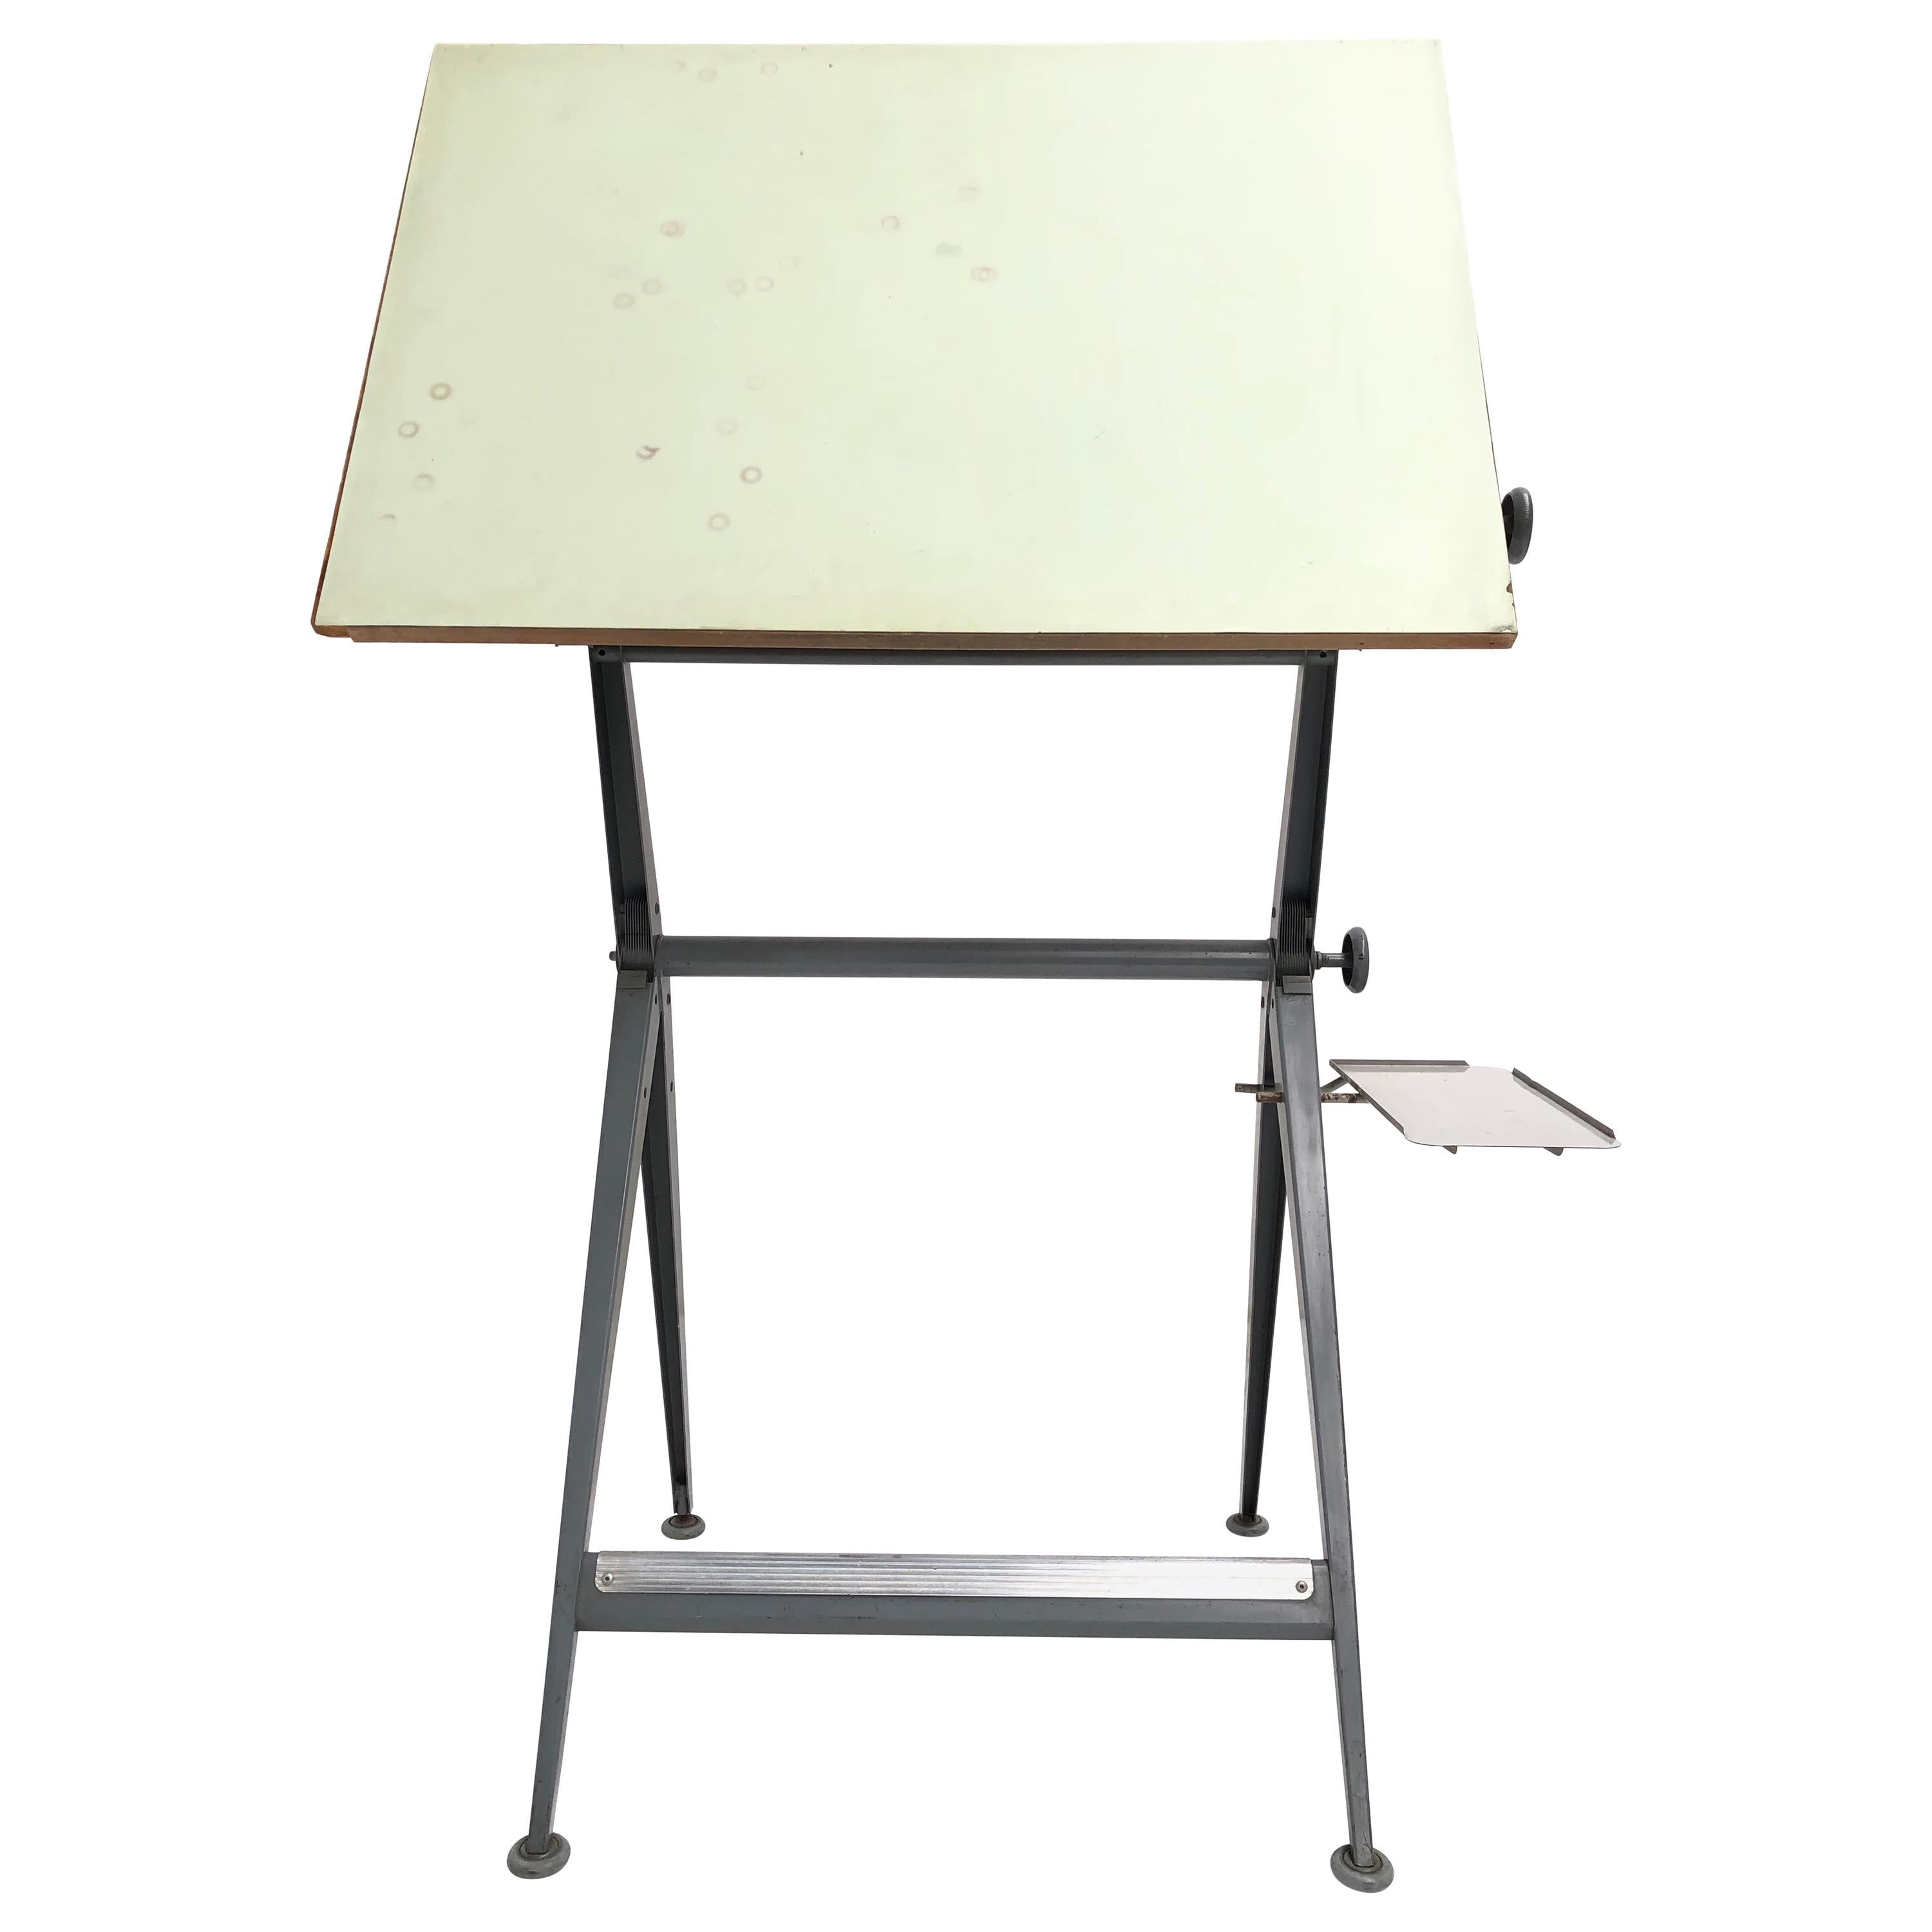 Wim Rietveld and Friso Kramer Reply Drafting Table 1959 Ahrend the Netherlands